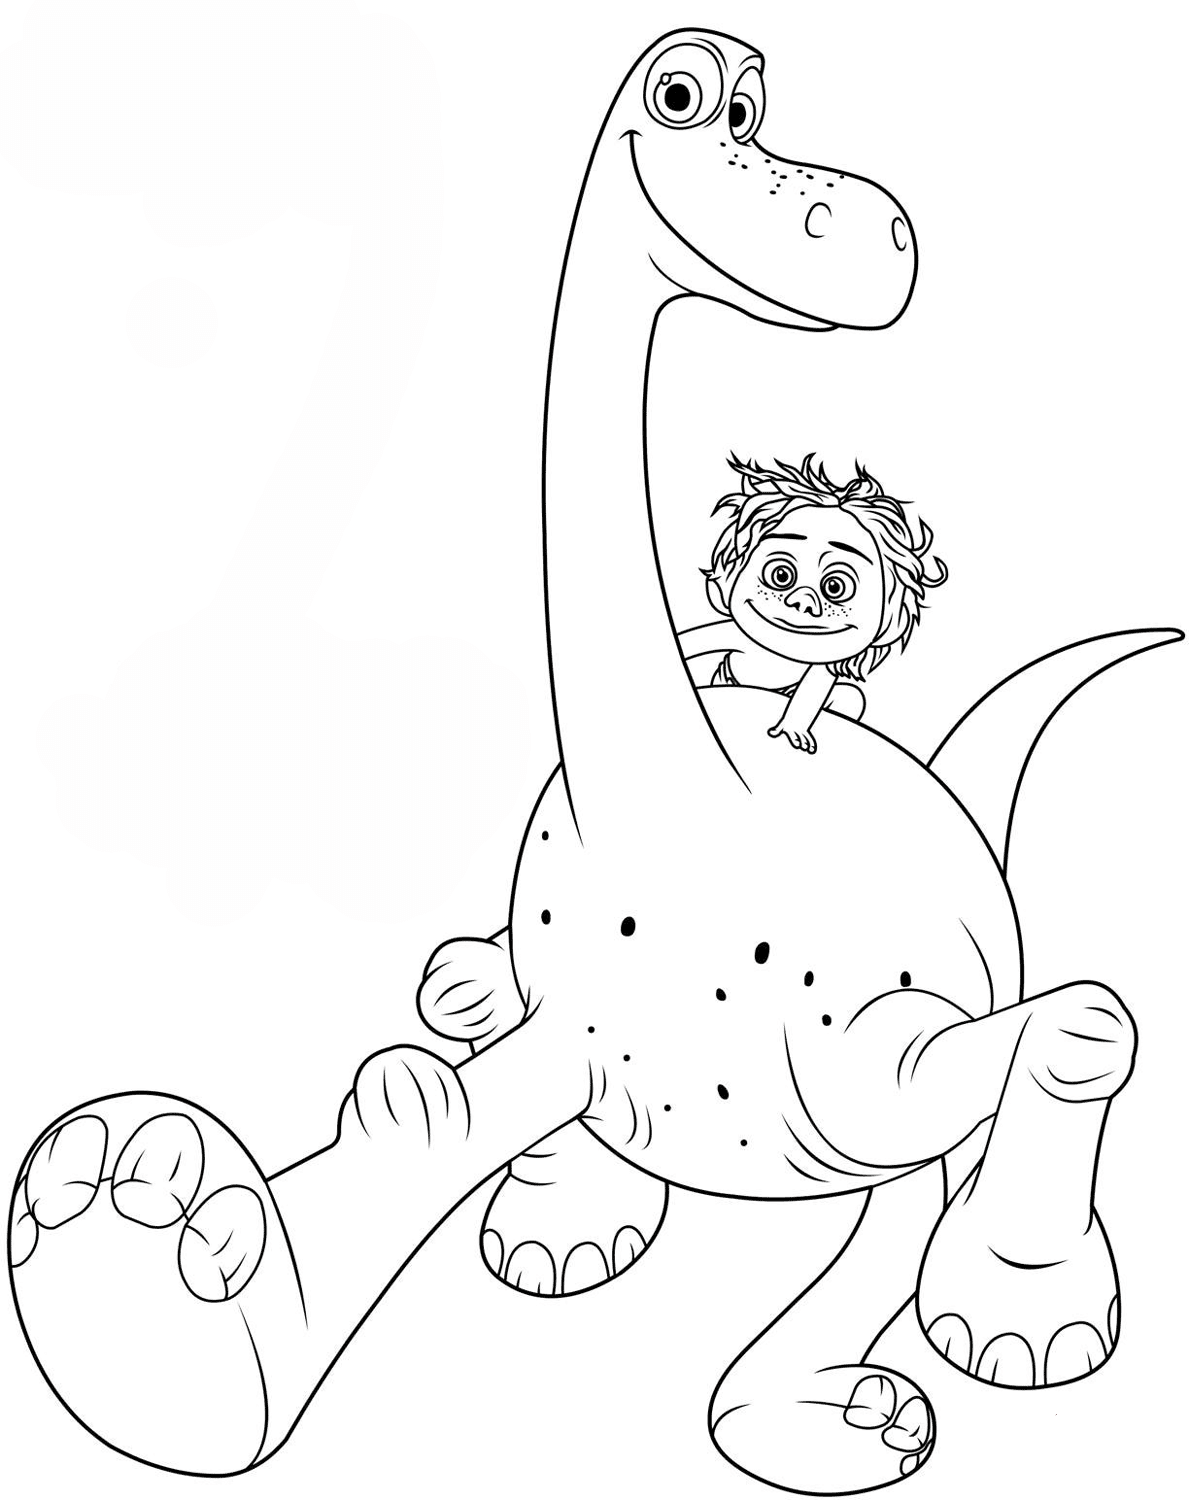 The good dinosaur coloring pages to download and print for ...